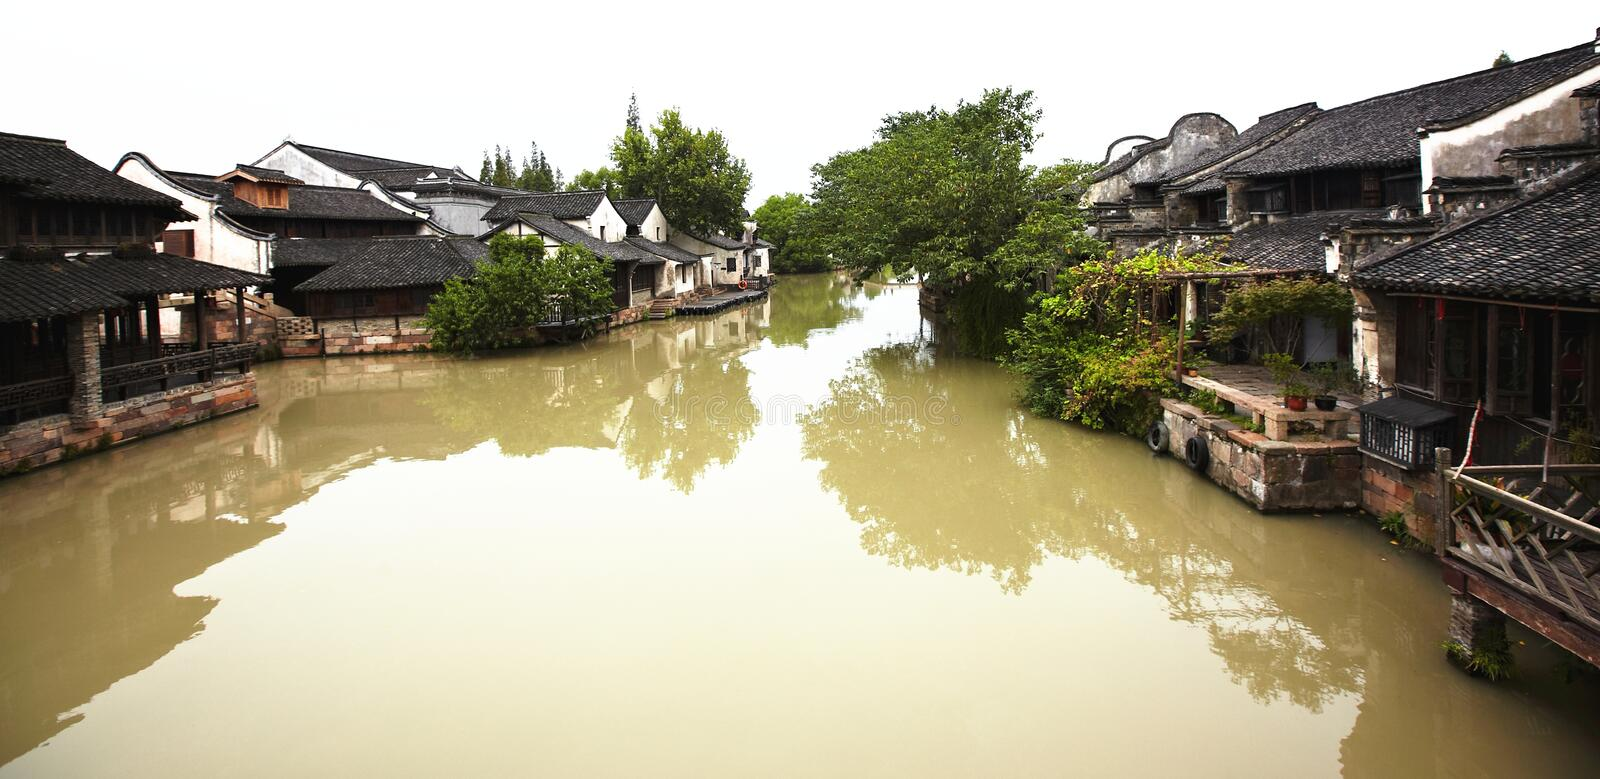 The Chinese watery town buildings. And marina by the river ,wuzhen,jiangsu,China royalty free stock image